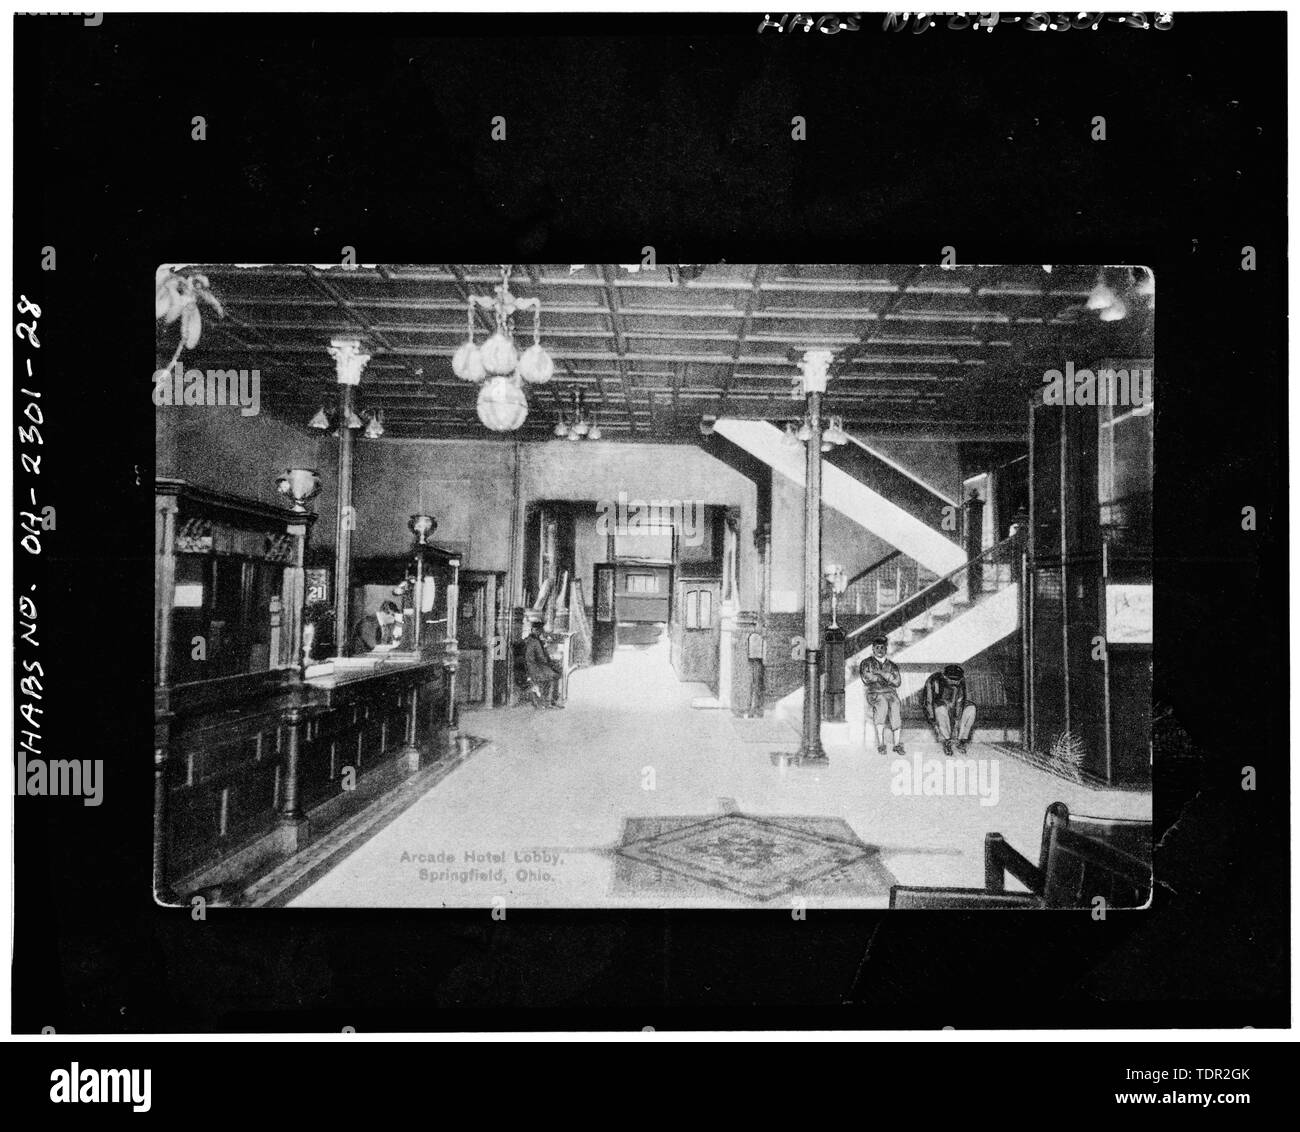 Photograph of postcard (from the Clark County Historical Society, Springfield, Ohio, date 12-10-1923) ARCADE HOTEL, LOBBY, VIEW SOUTH - Arcade Hotel, Fountain Avenue, bounded by High and Washington Streets, Springfield, Clark County, OH - Stock Image